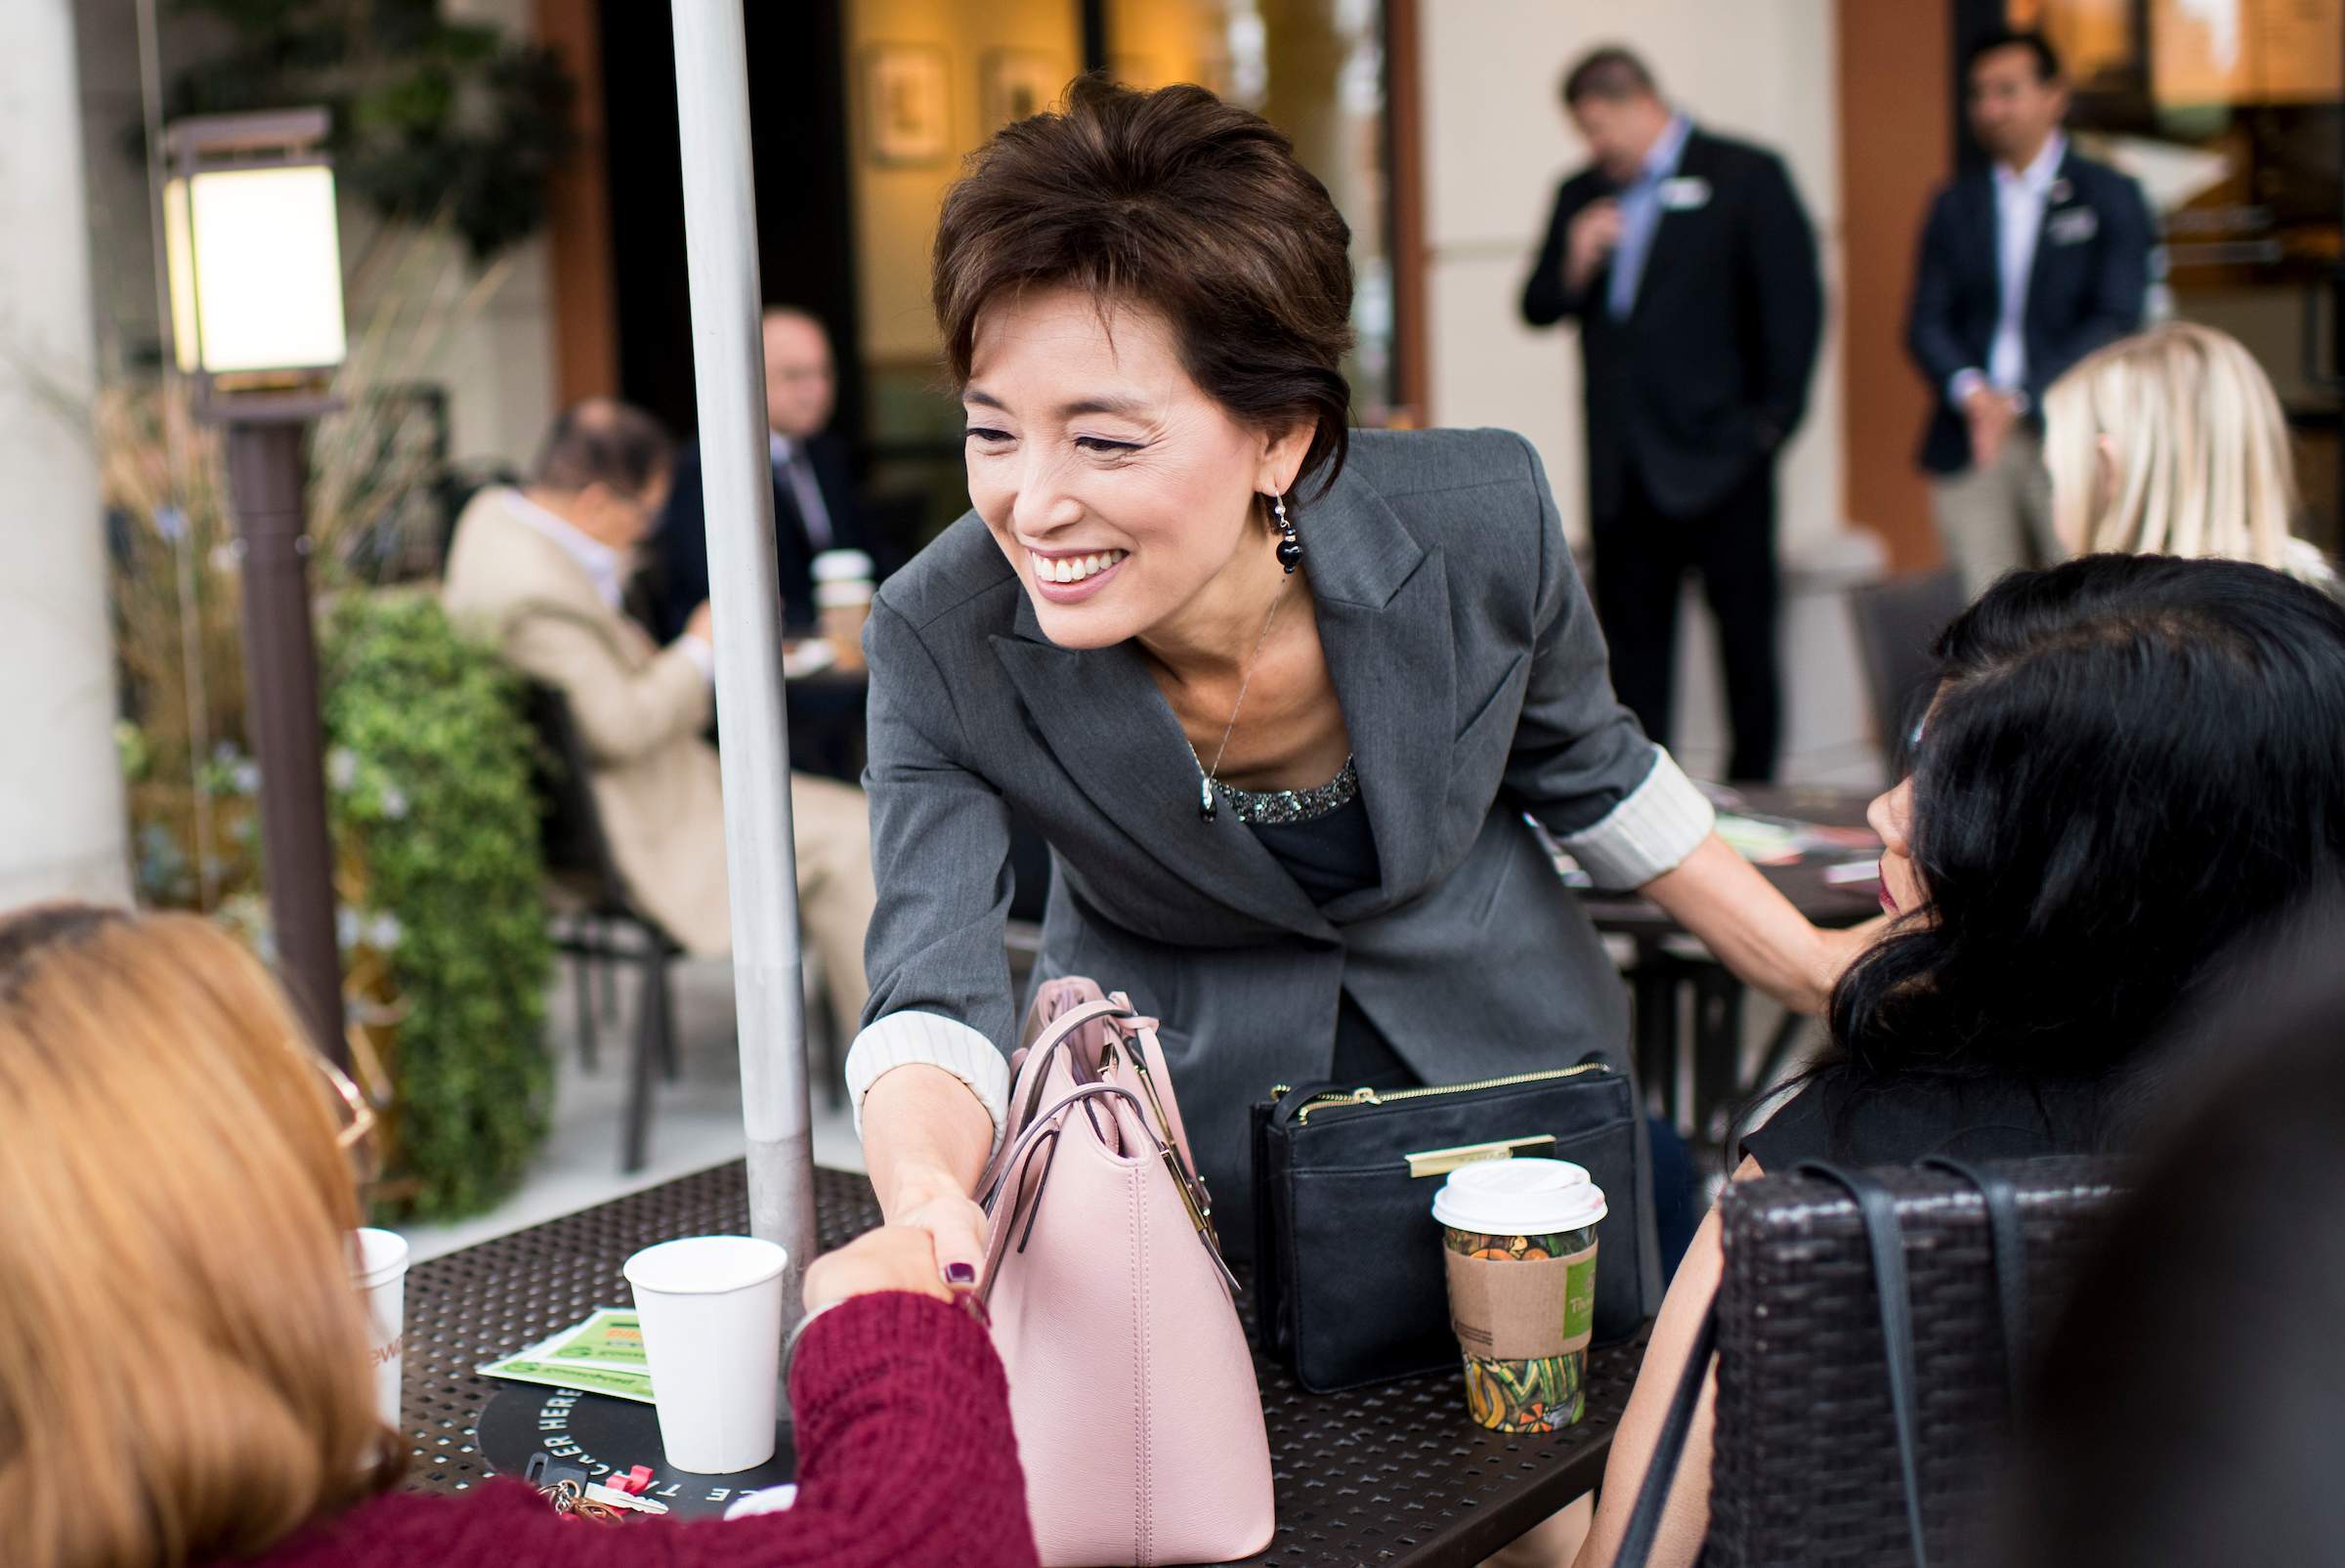 California Rep.-elect Young Kim, here campaigning in Brea, Calif., in 2018, says the level of behind-the-scenes support for GOP female candidates was more palpable this year because the party made it a higher priority. (Bill Clark/CQ Roll Call file photo)